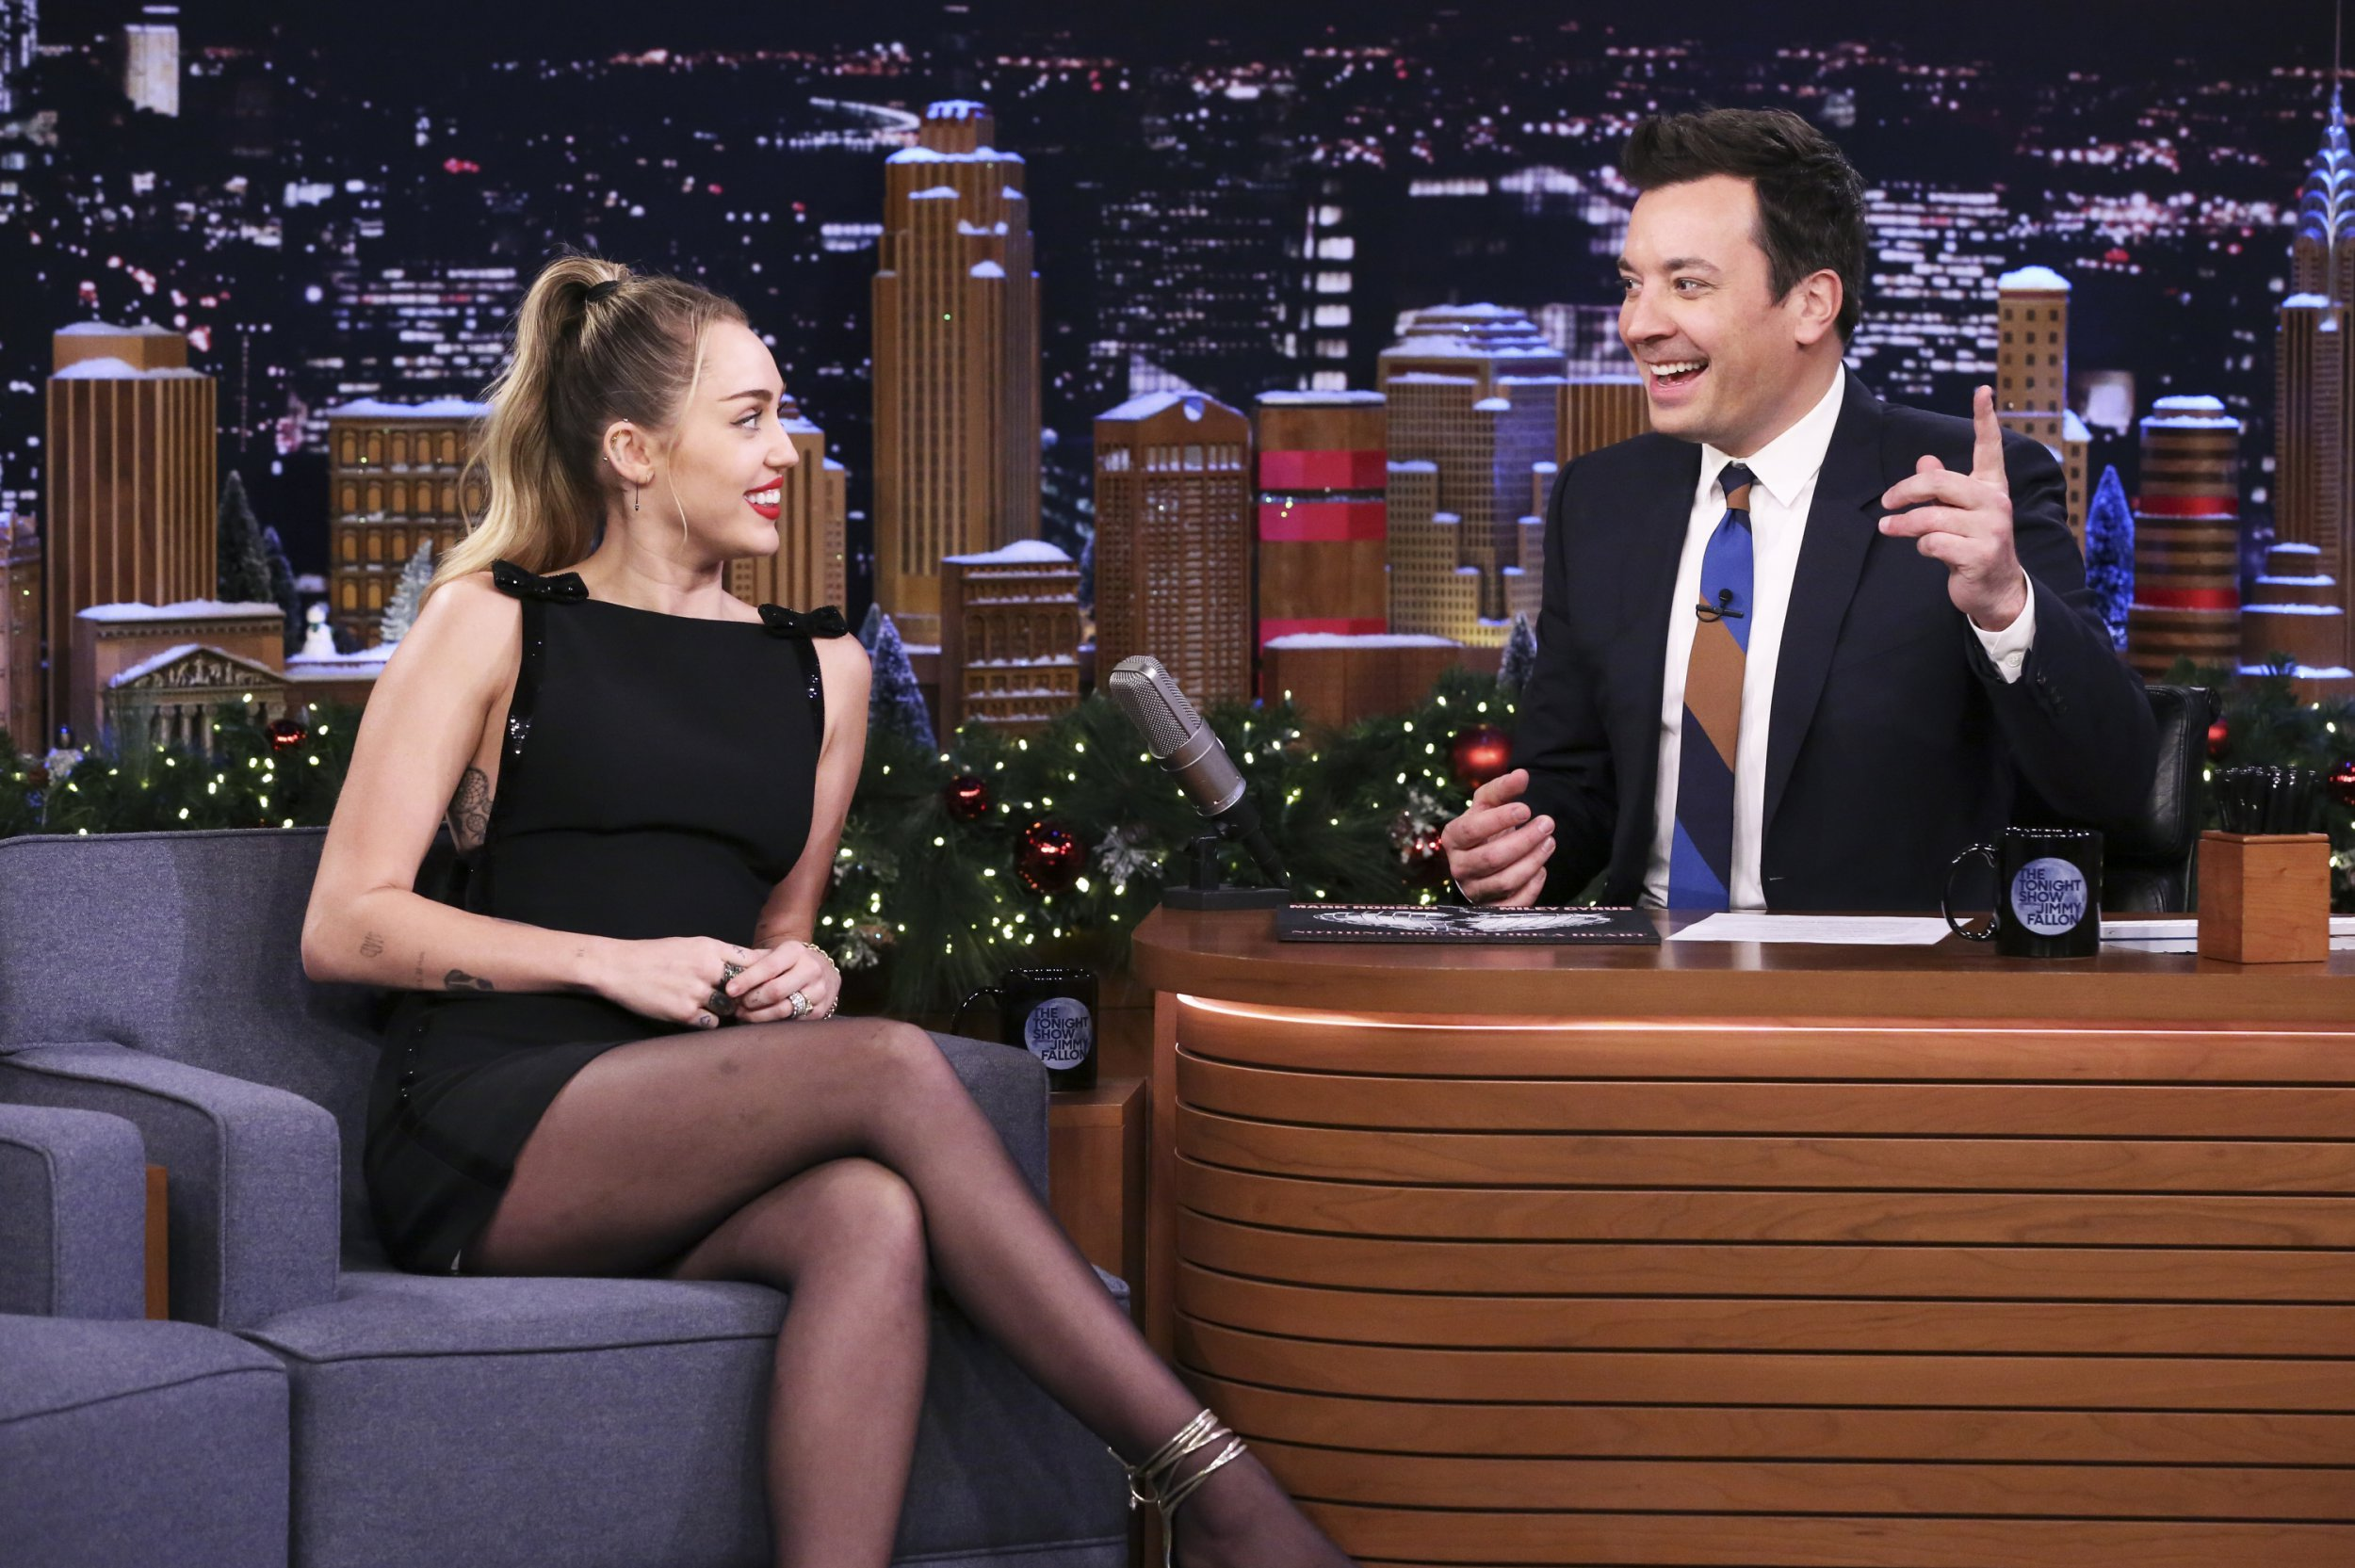 THE TONIGHT SHOW STARRING JIMMY FALLON -- Episode 0981 -- Pictured: (l-r) Singer Miley Cyrus during an interview with host Jimmy Fallon on December 13, 2018 -- (Photo by: Andrew Lipovsky/NBC/NBCU Photobank)